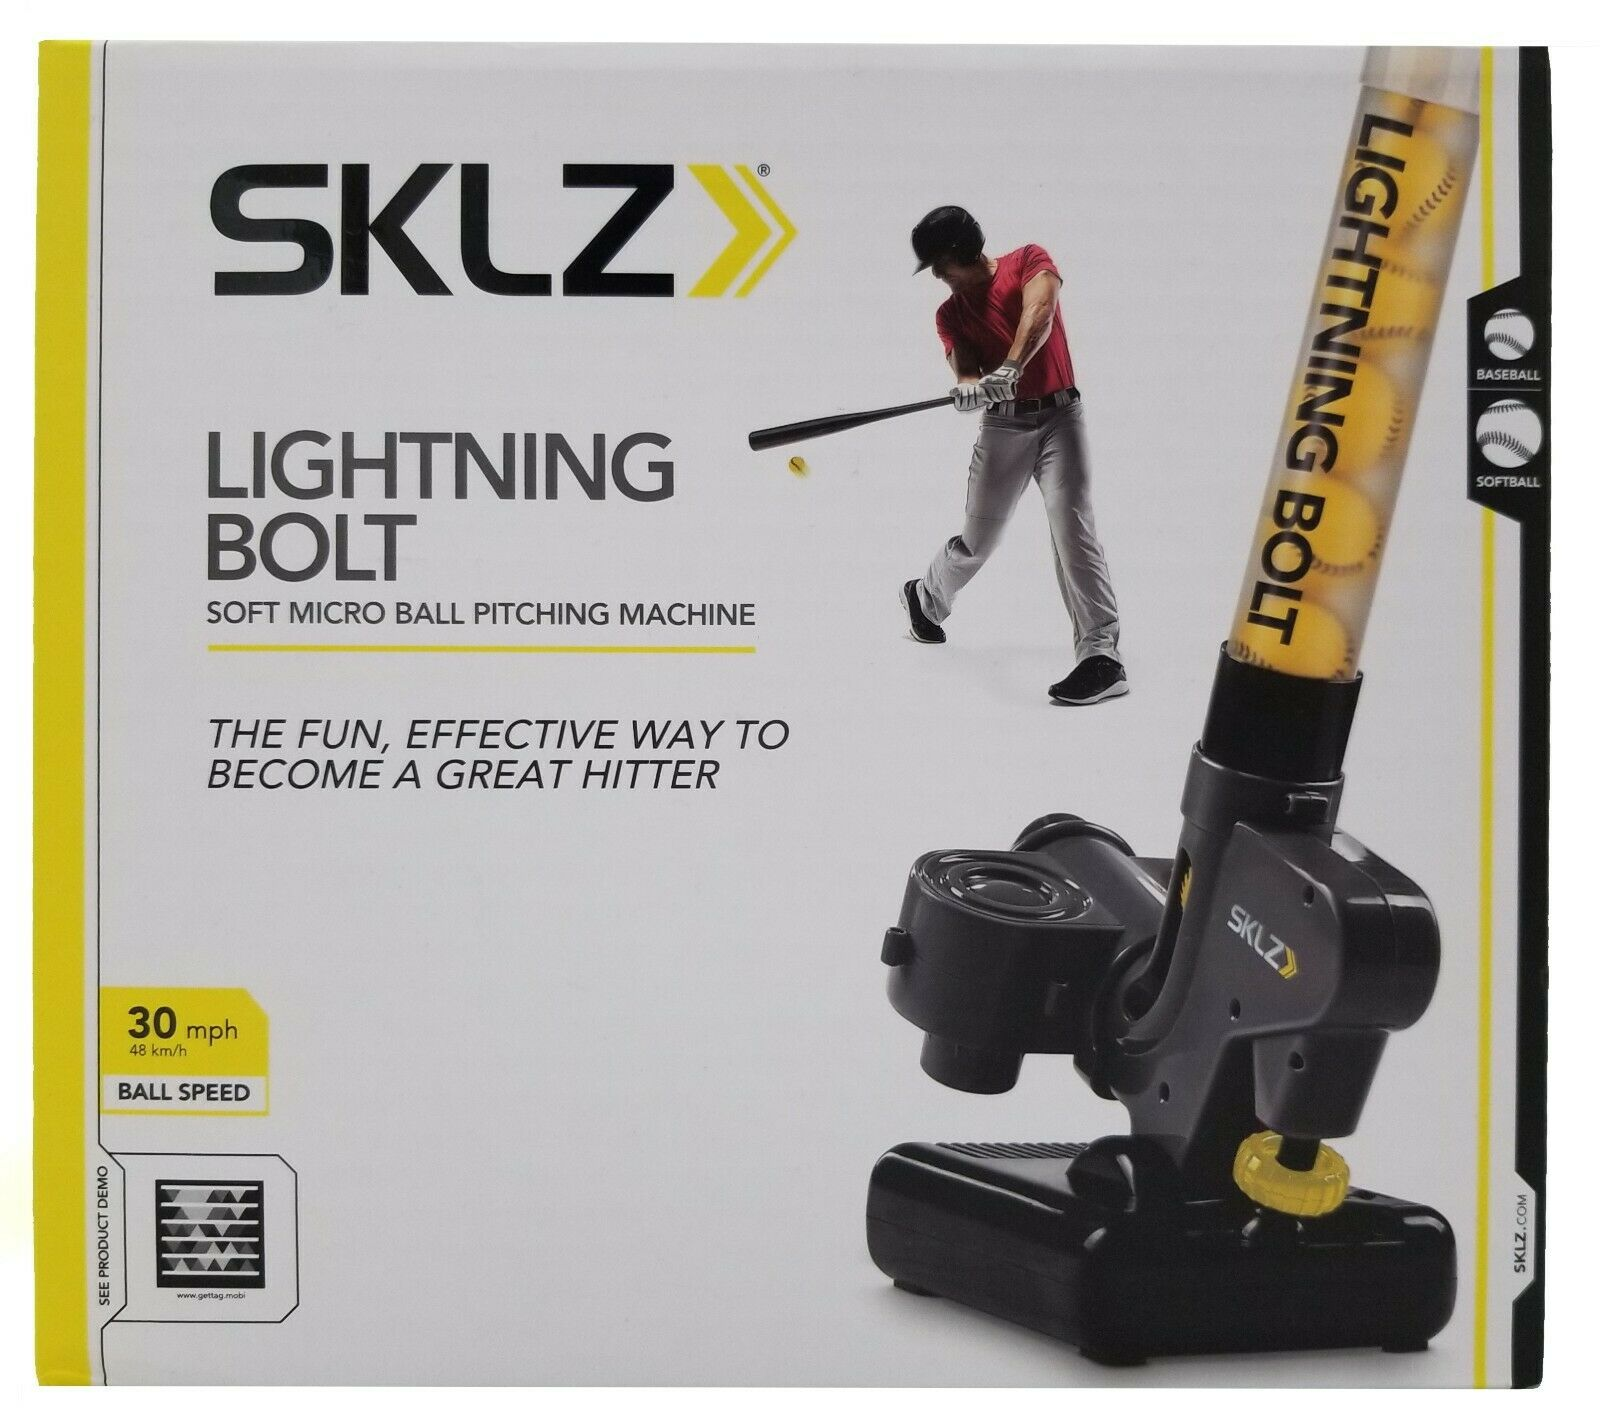 SKLZ Lightning Bolt Pitching Machine Pro